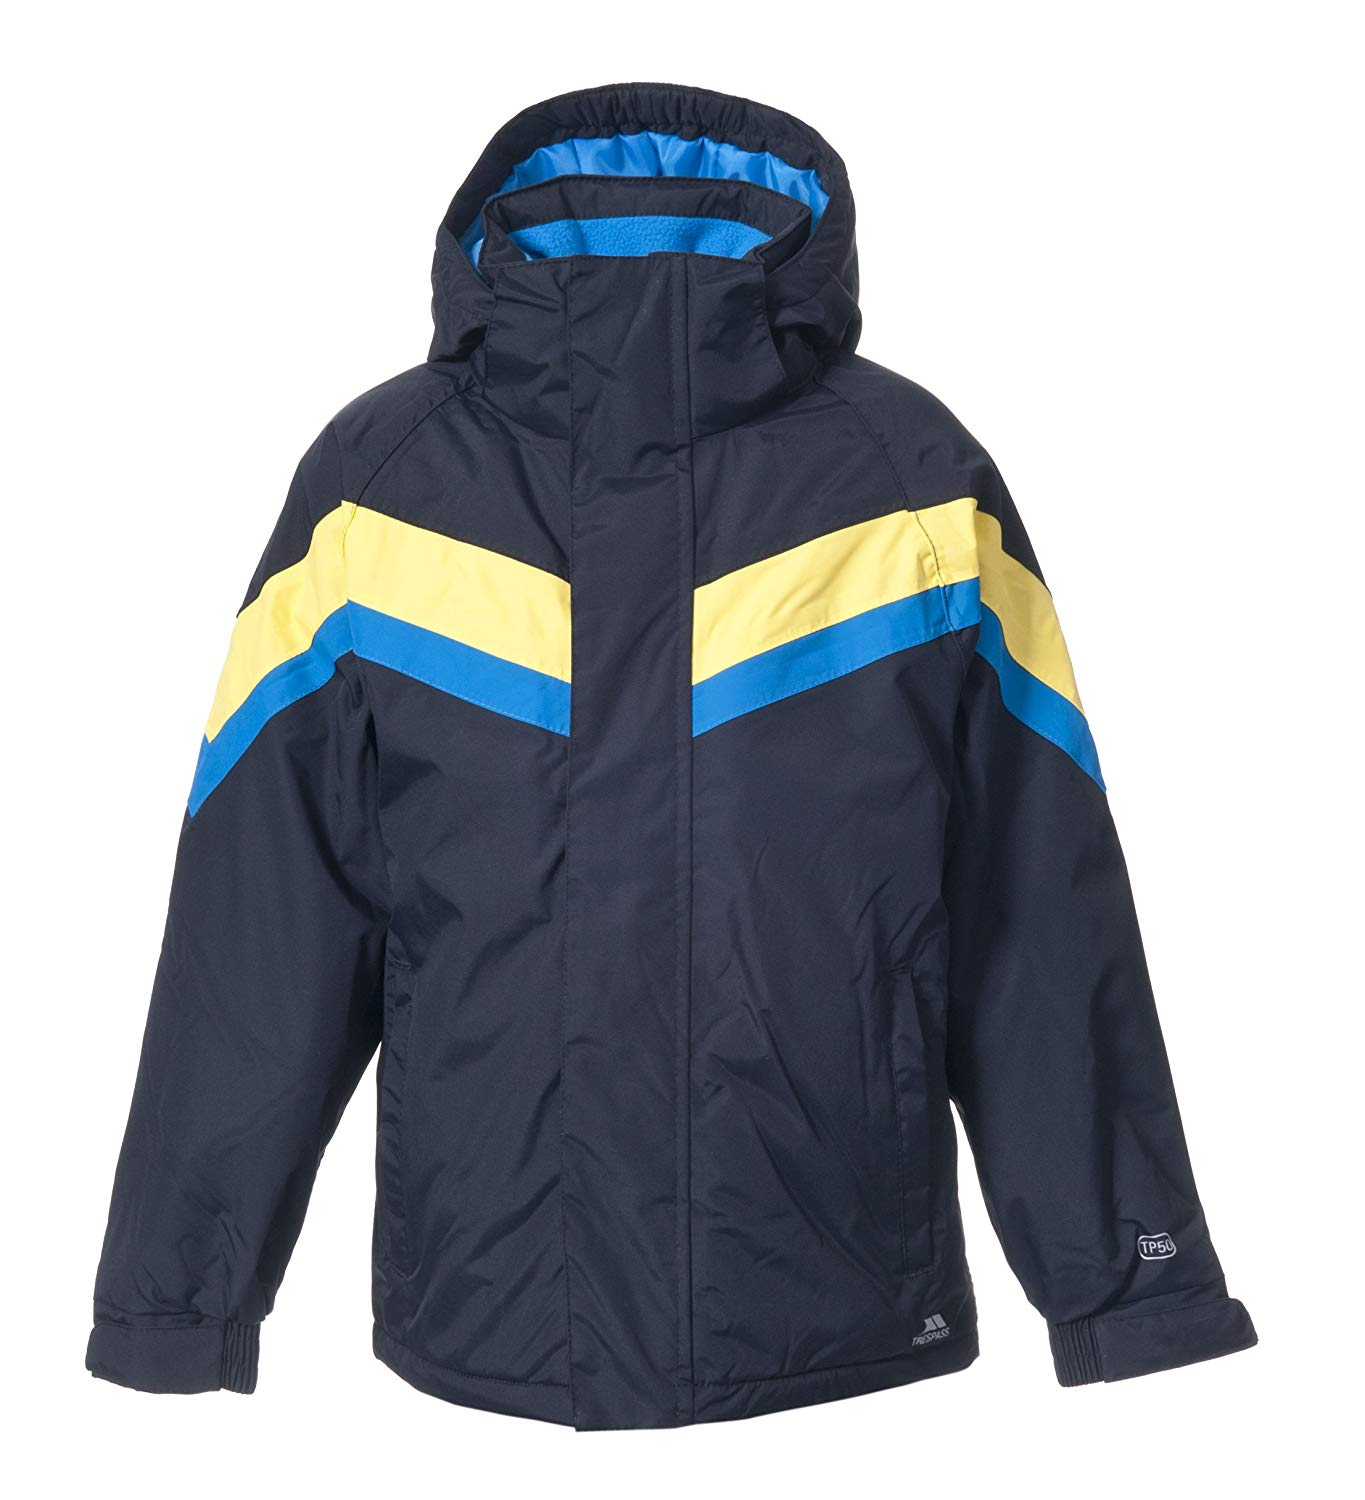 dbed406d42 Get Quotations · Trespass Kennedy Boys Ski Waterproof Hooded Coat Padded Winter  Snow Jacket